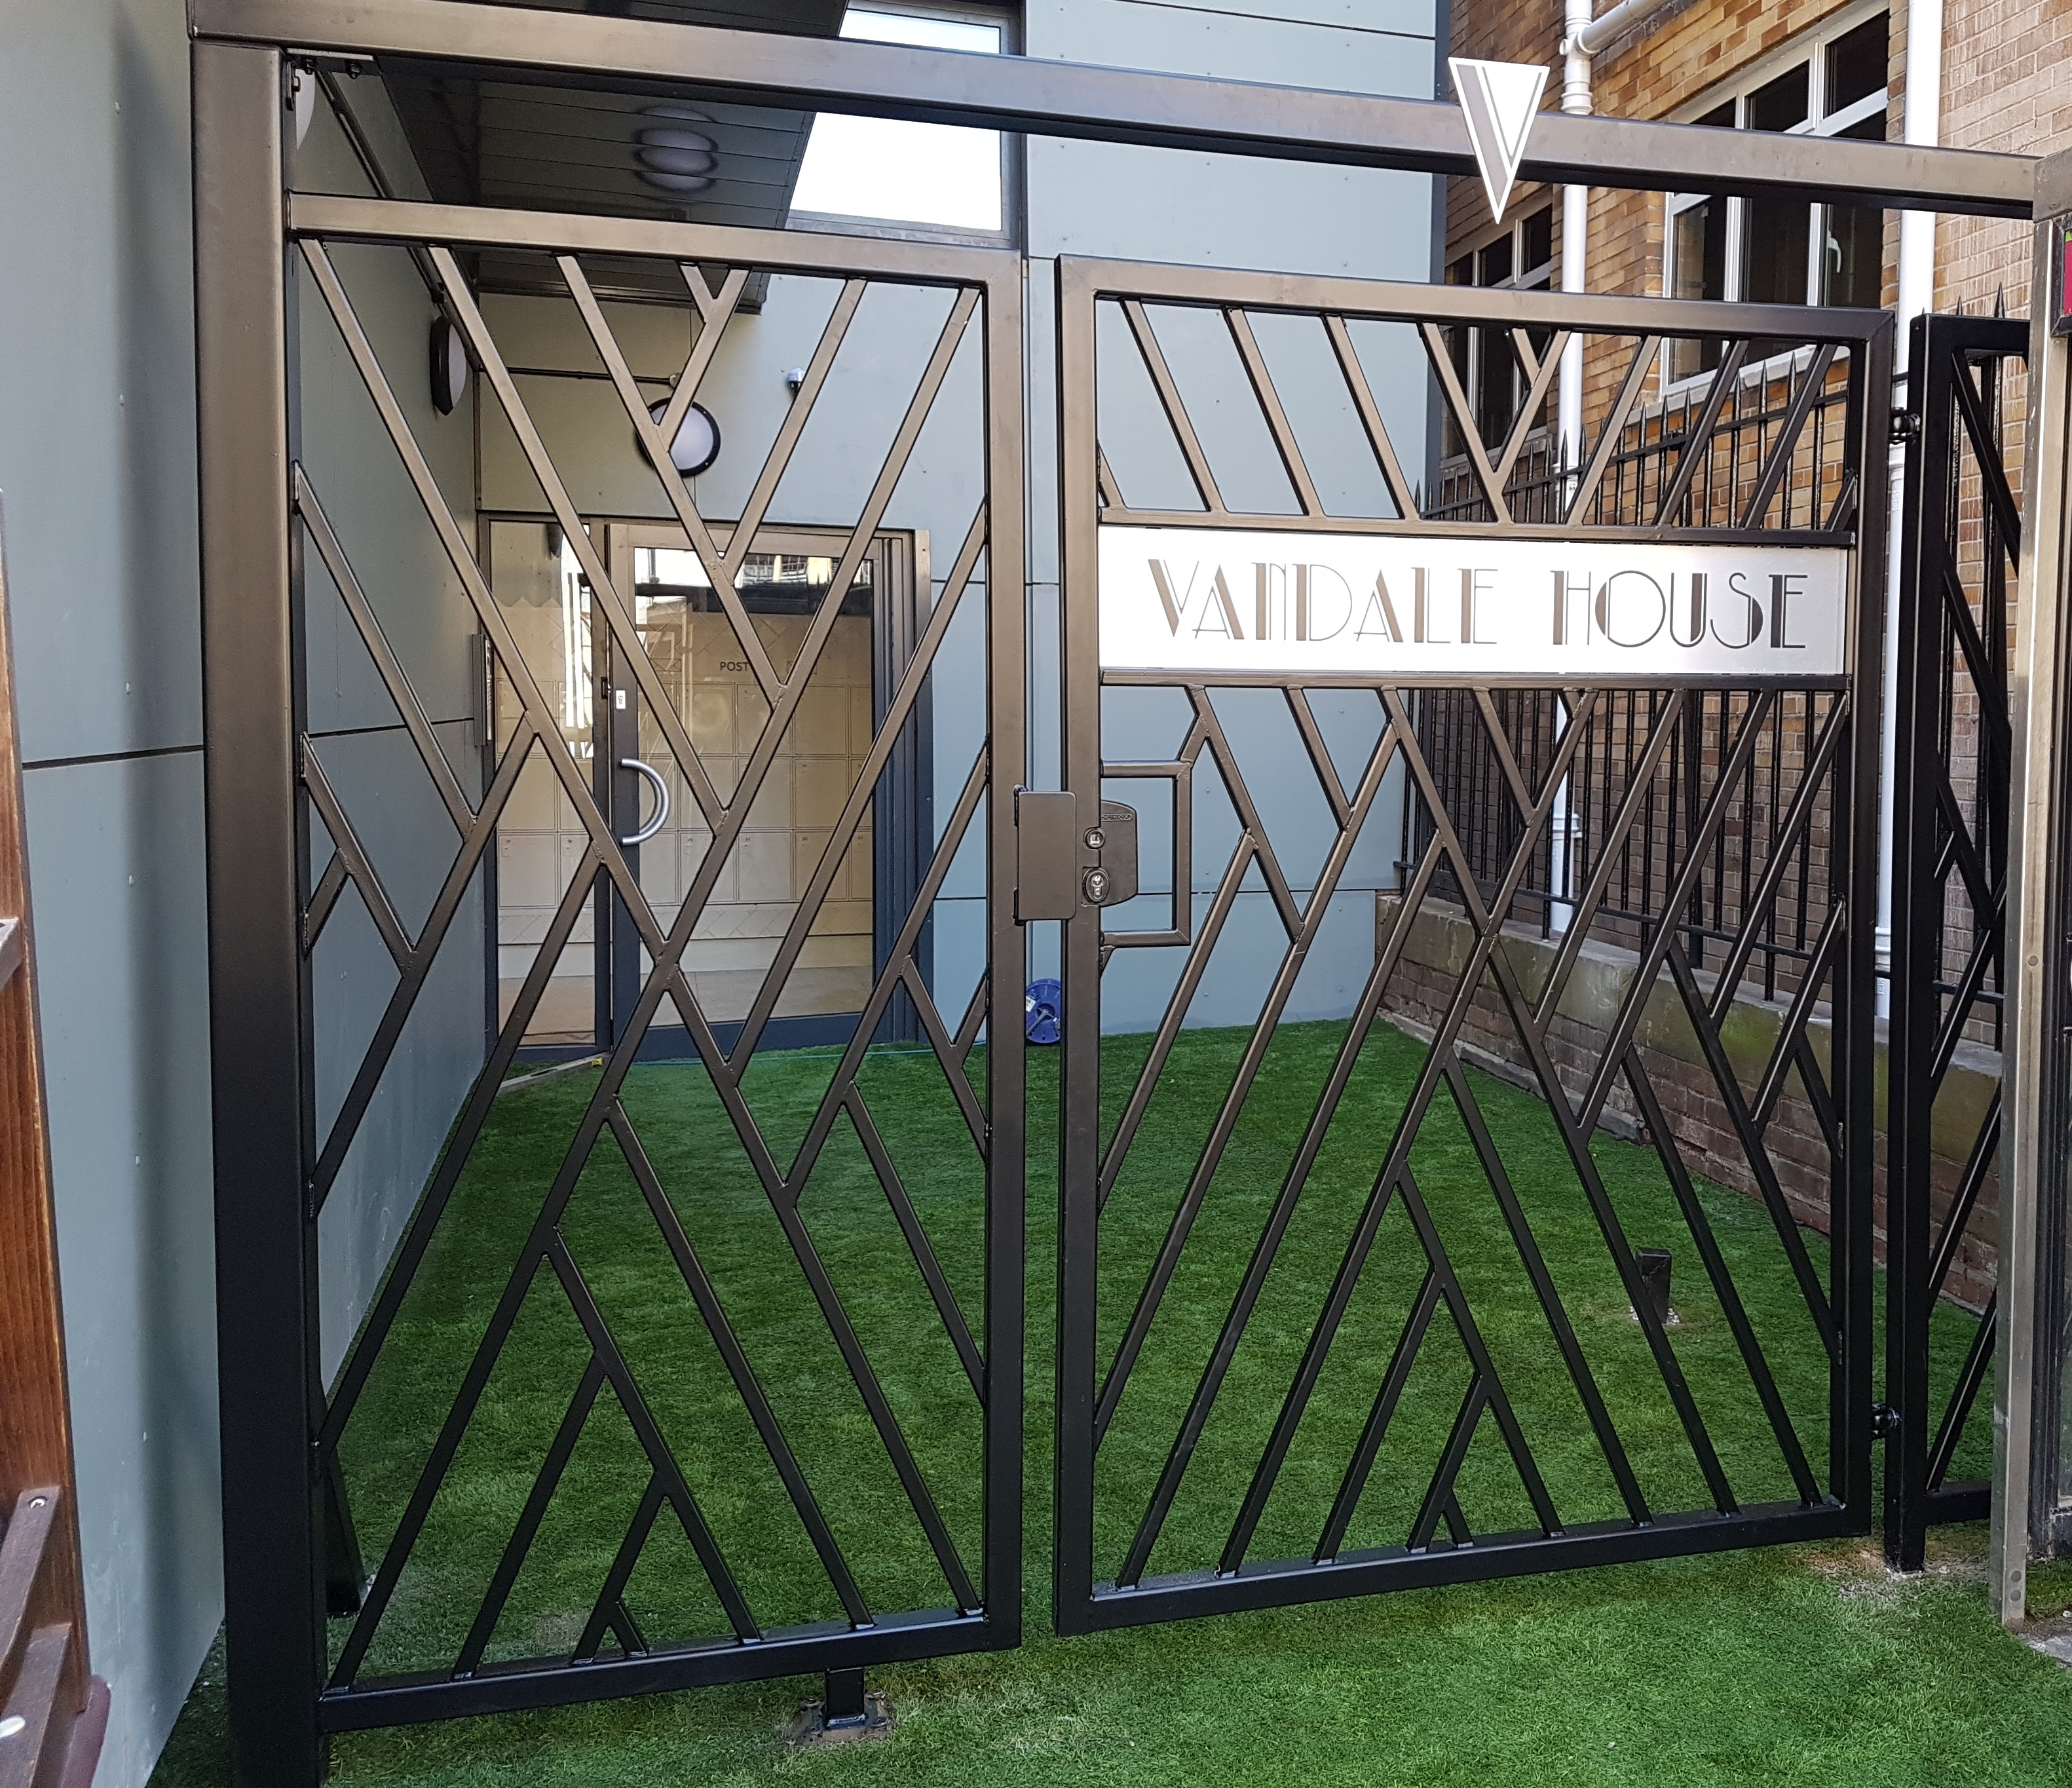 Wrought Iron Gates And Steel Barriers: Wrought Iron And Other Gates